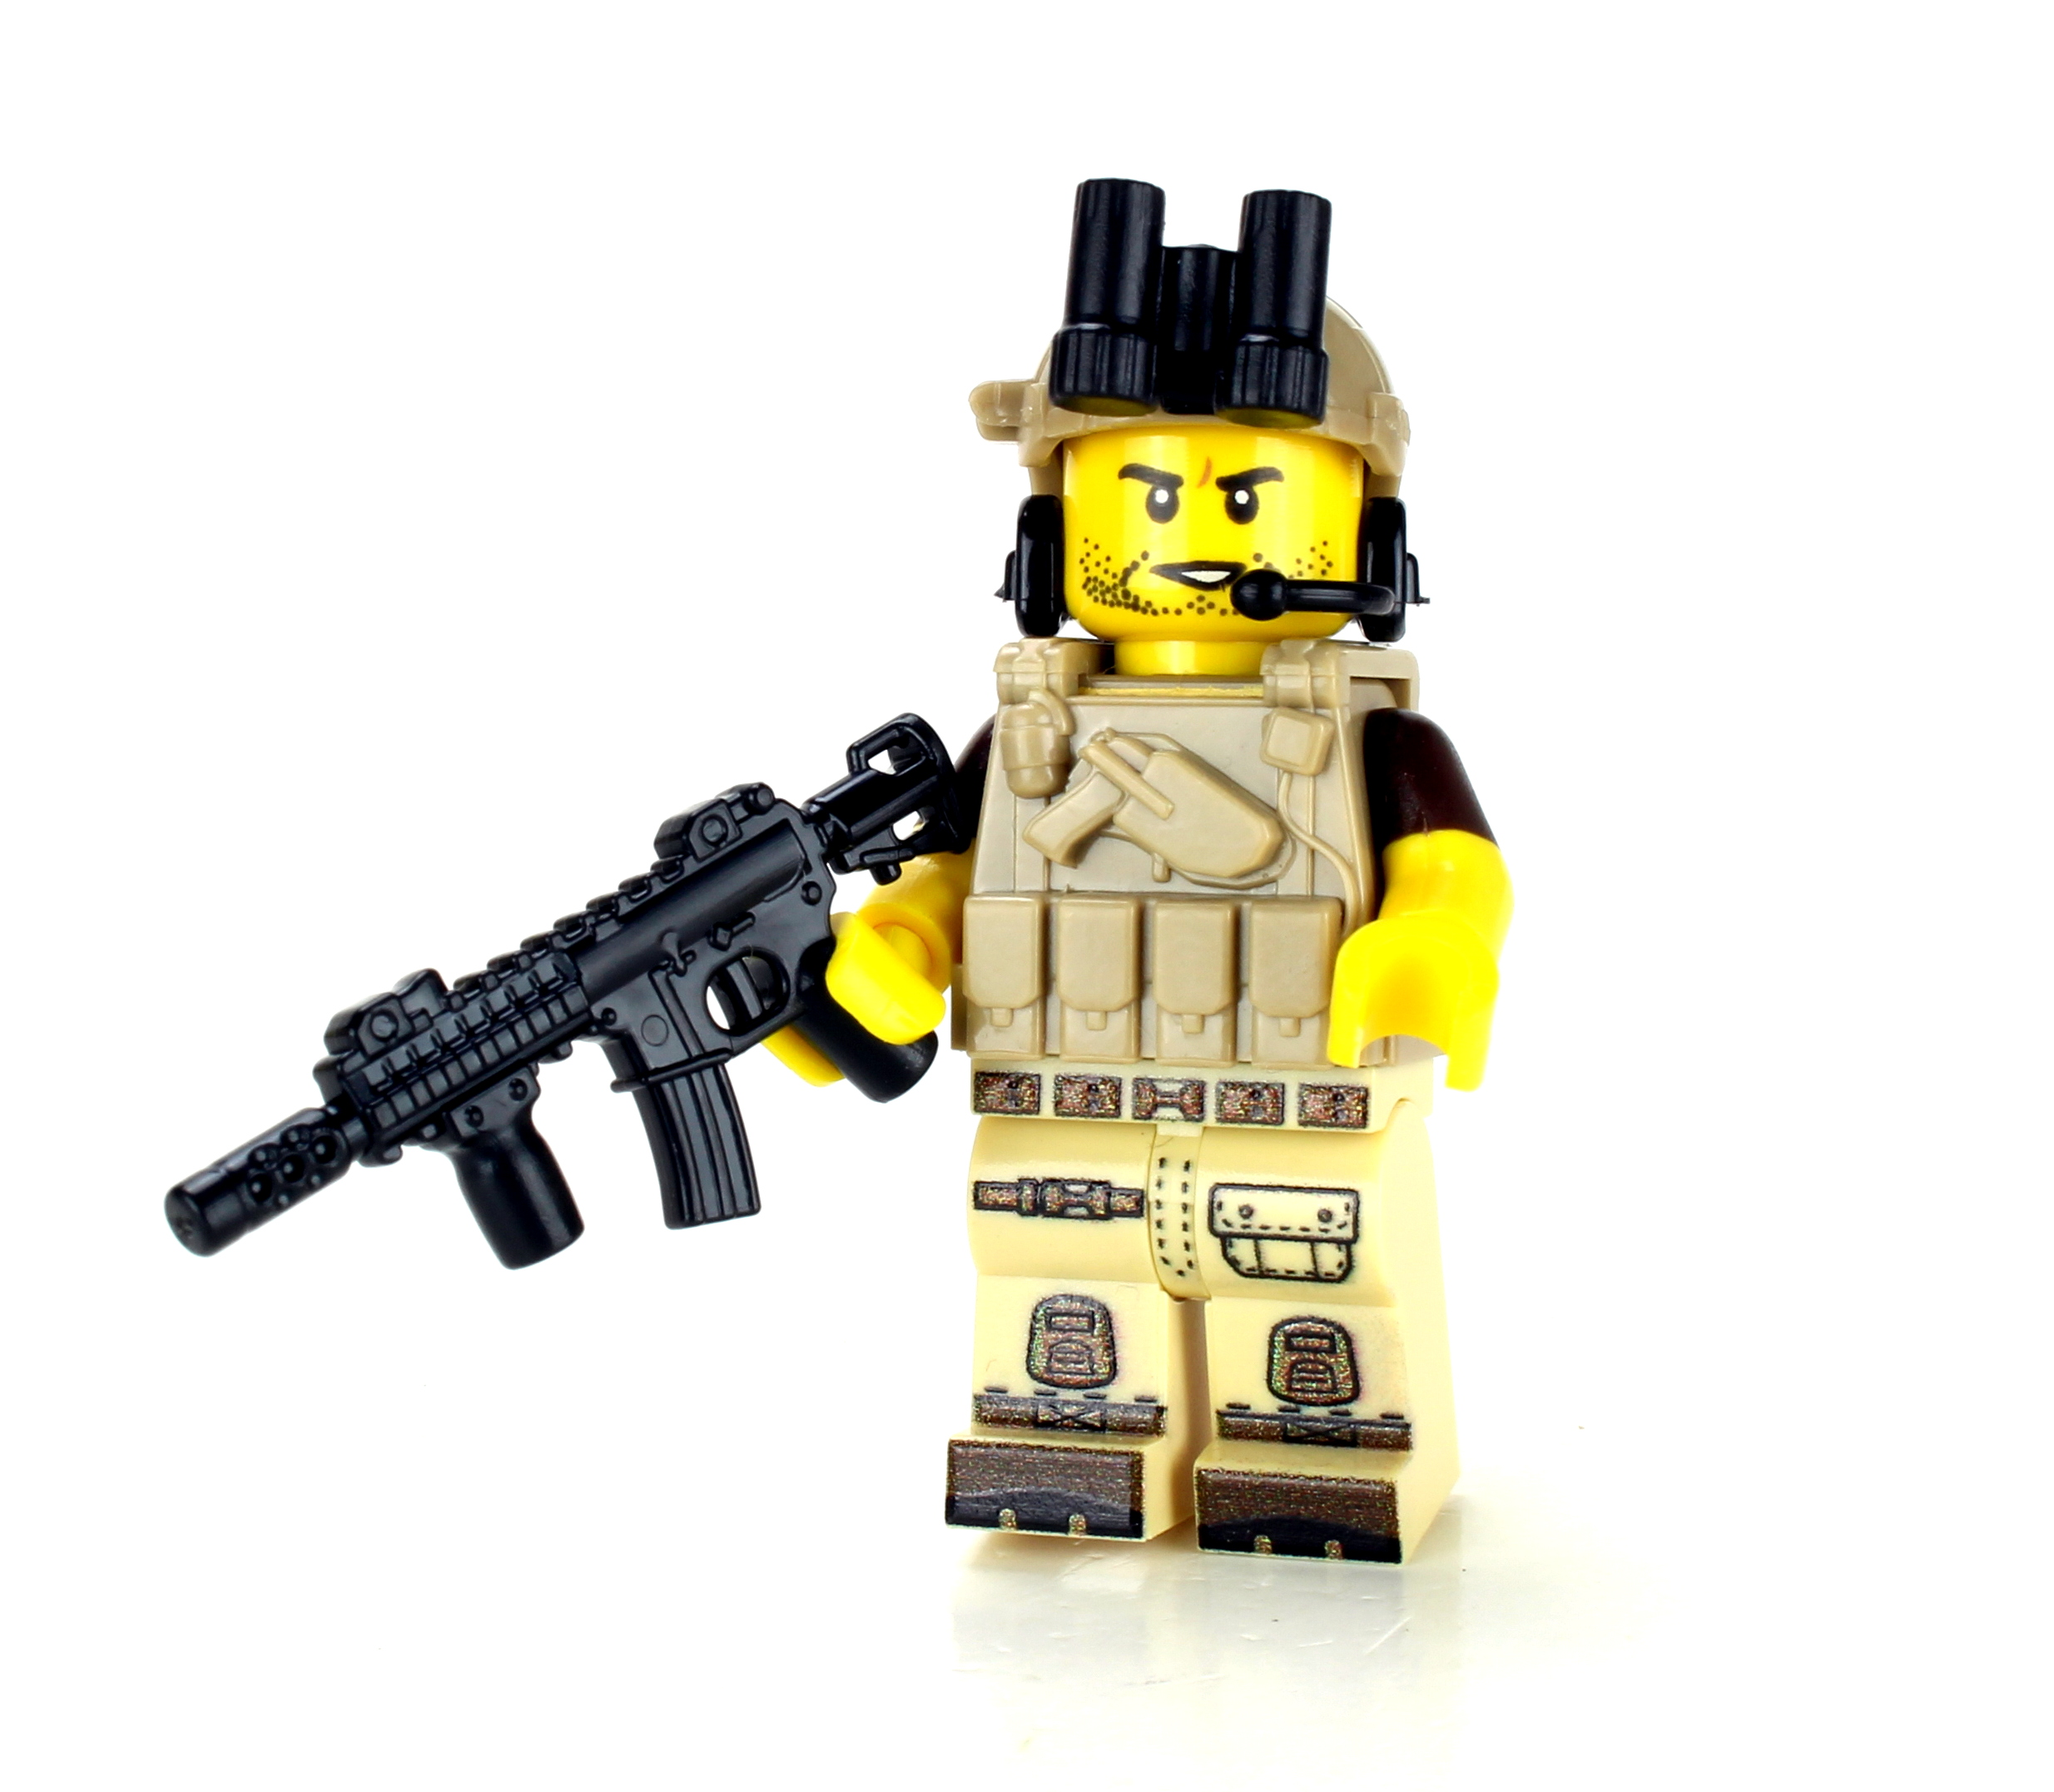 Tan Army Soldier minifigure value